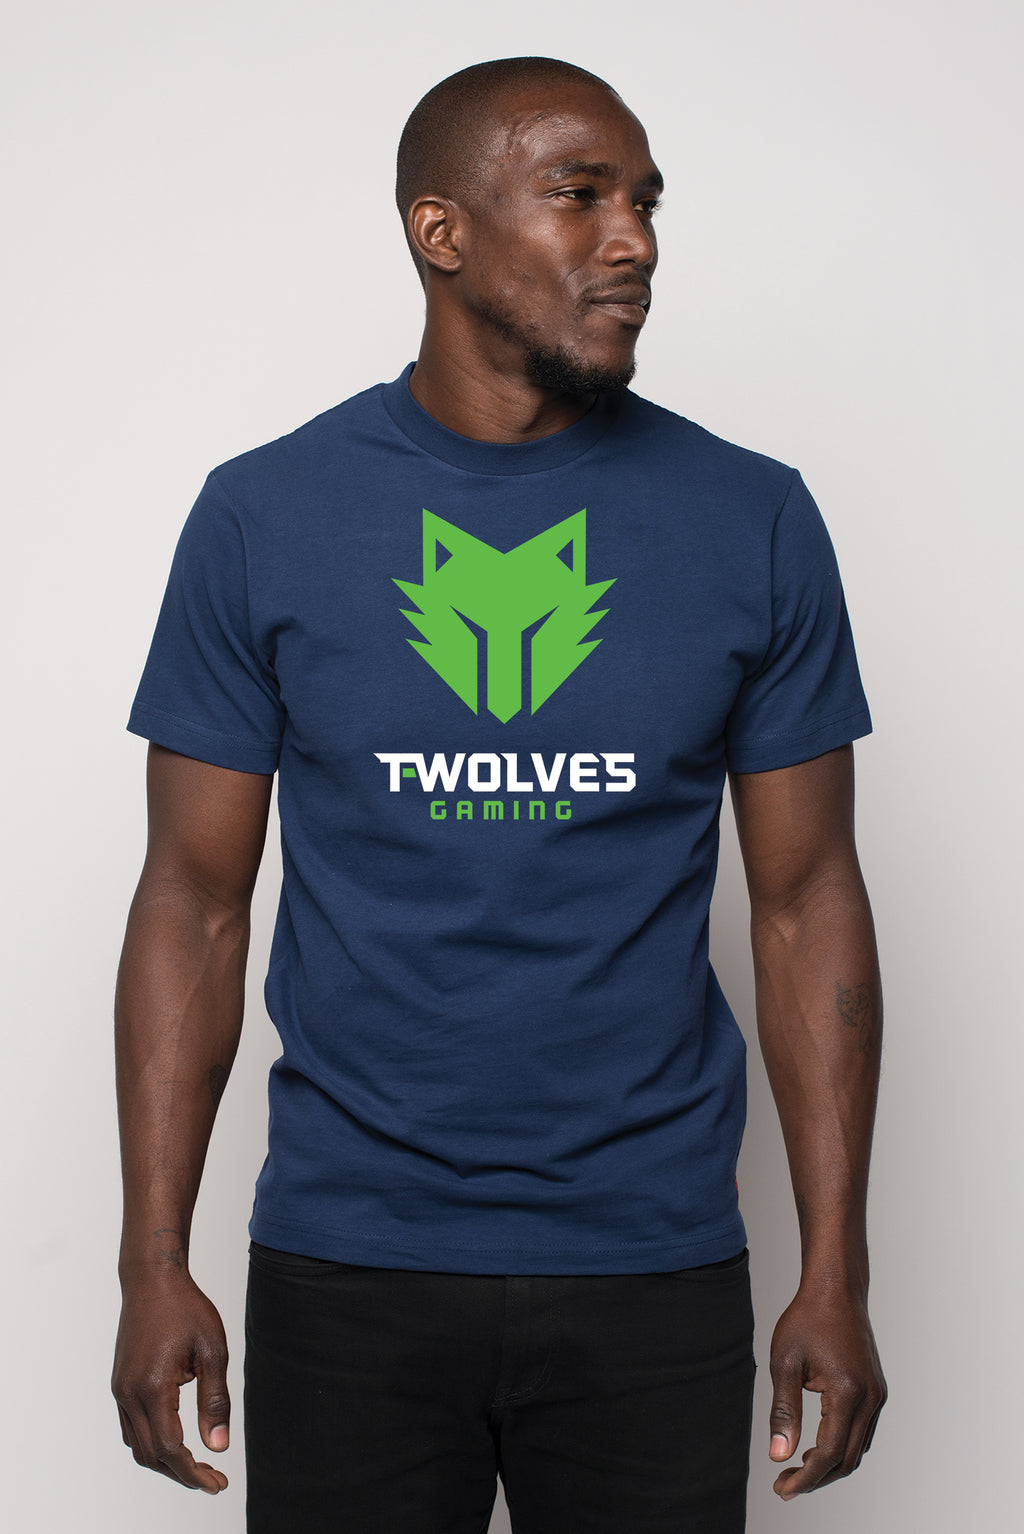 T-Wolves Gaming Fowler T-Shirt